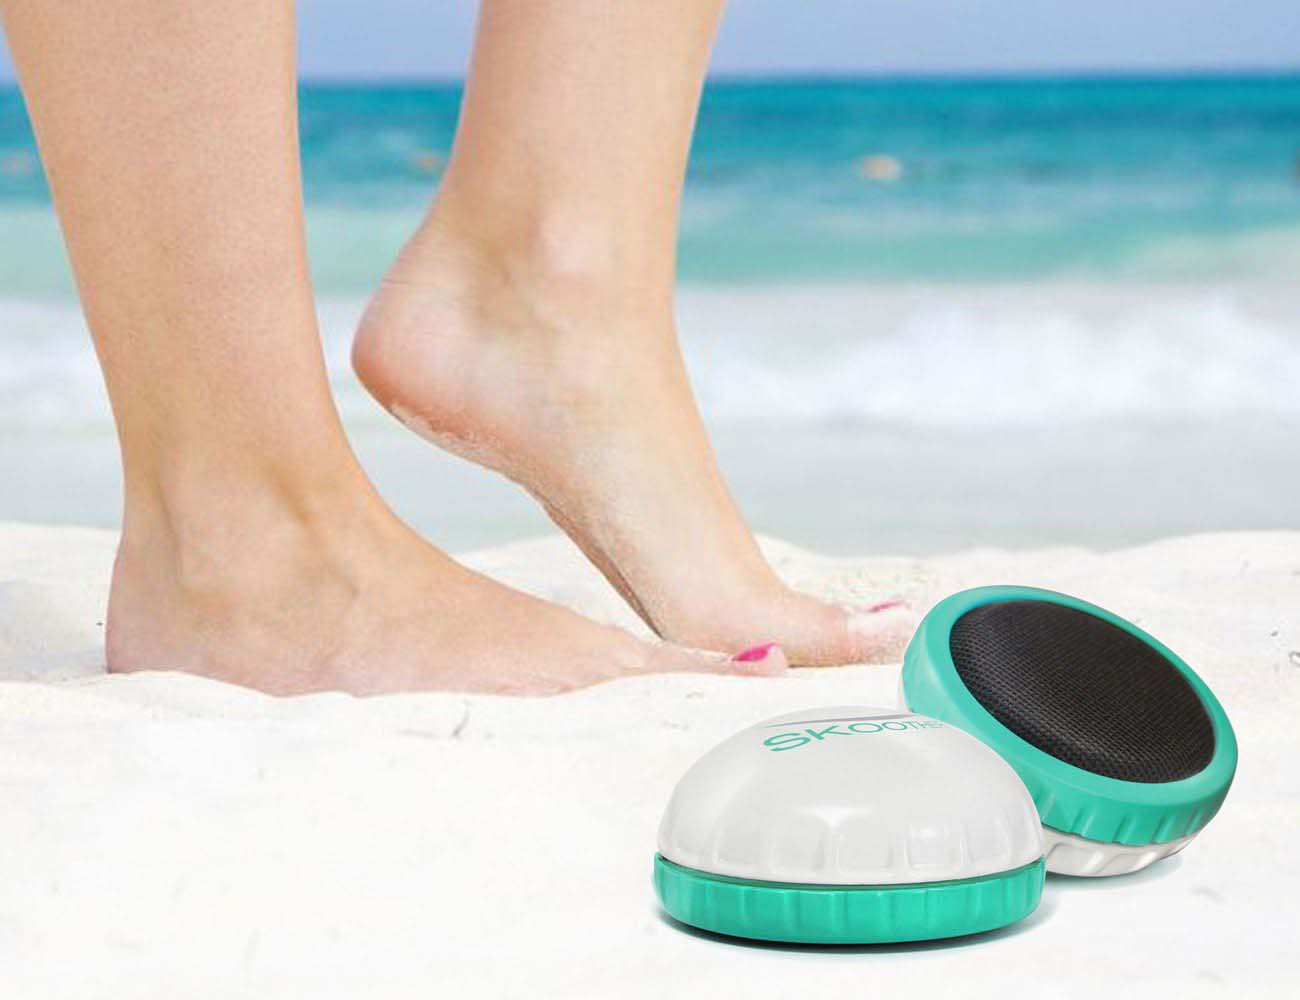 SKOOTHER Skin Smoother